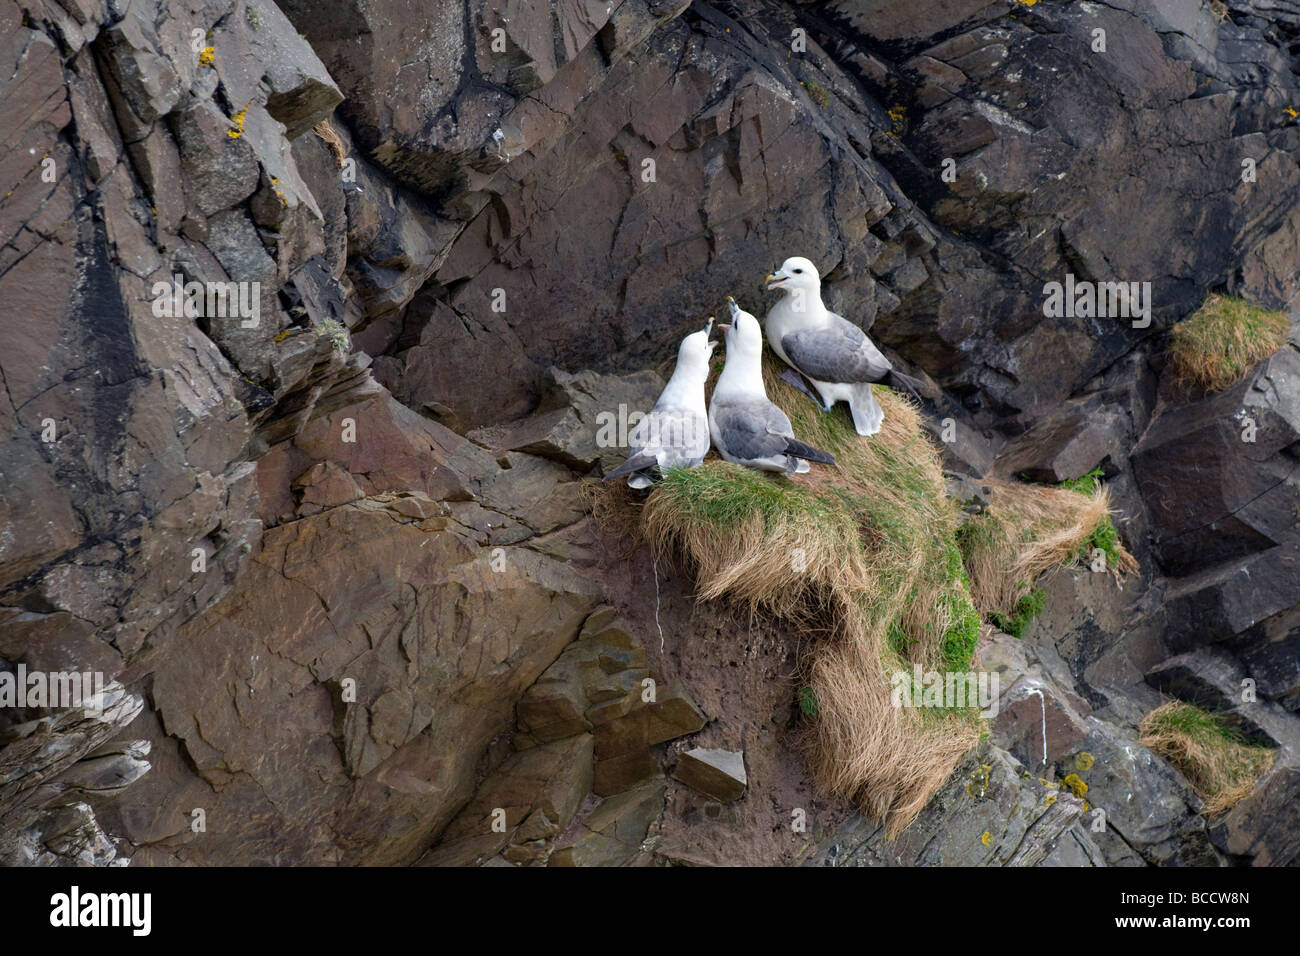 Juveniles and parent Common gulls, more commonly called seagulls nesting on cliffs at Balnakeil bay, Scotland in - Stock Image